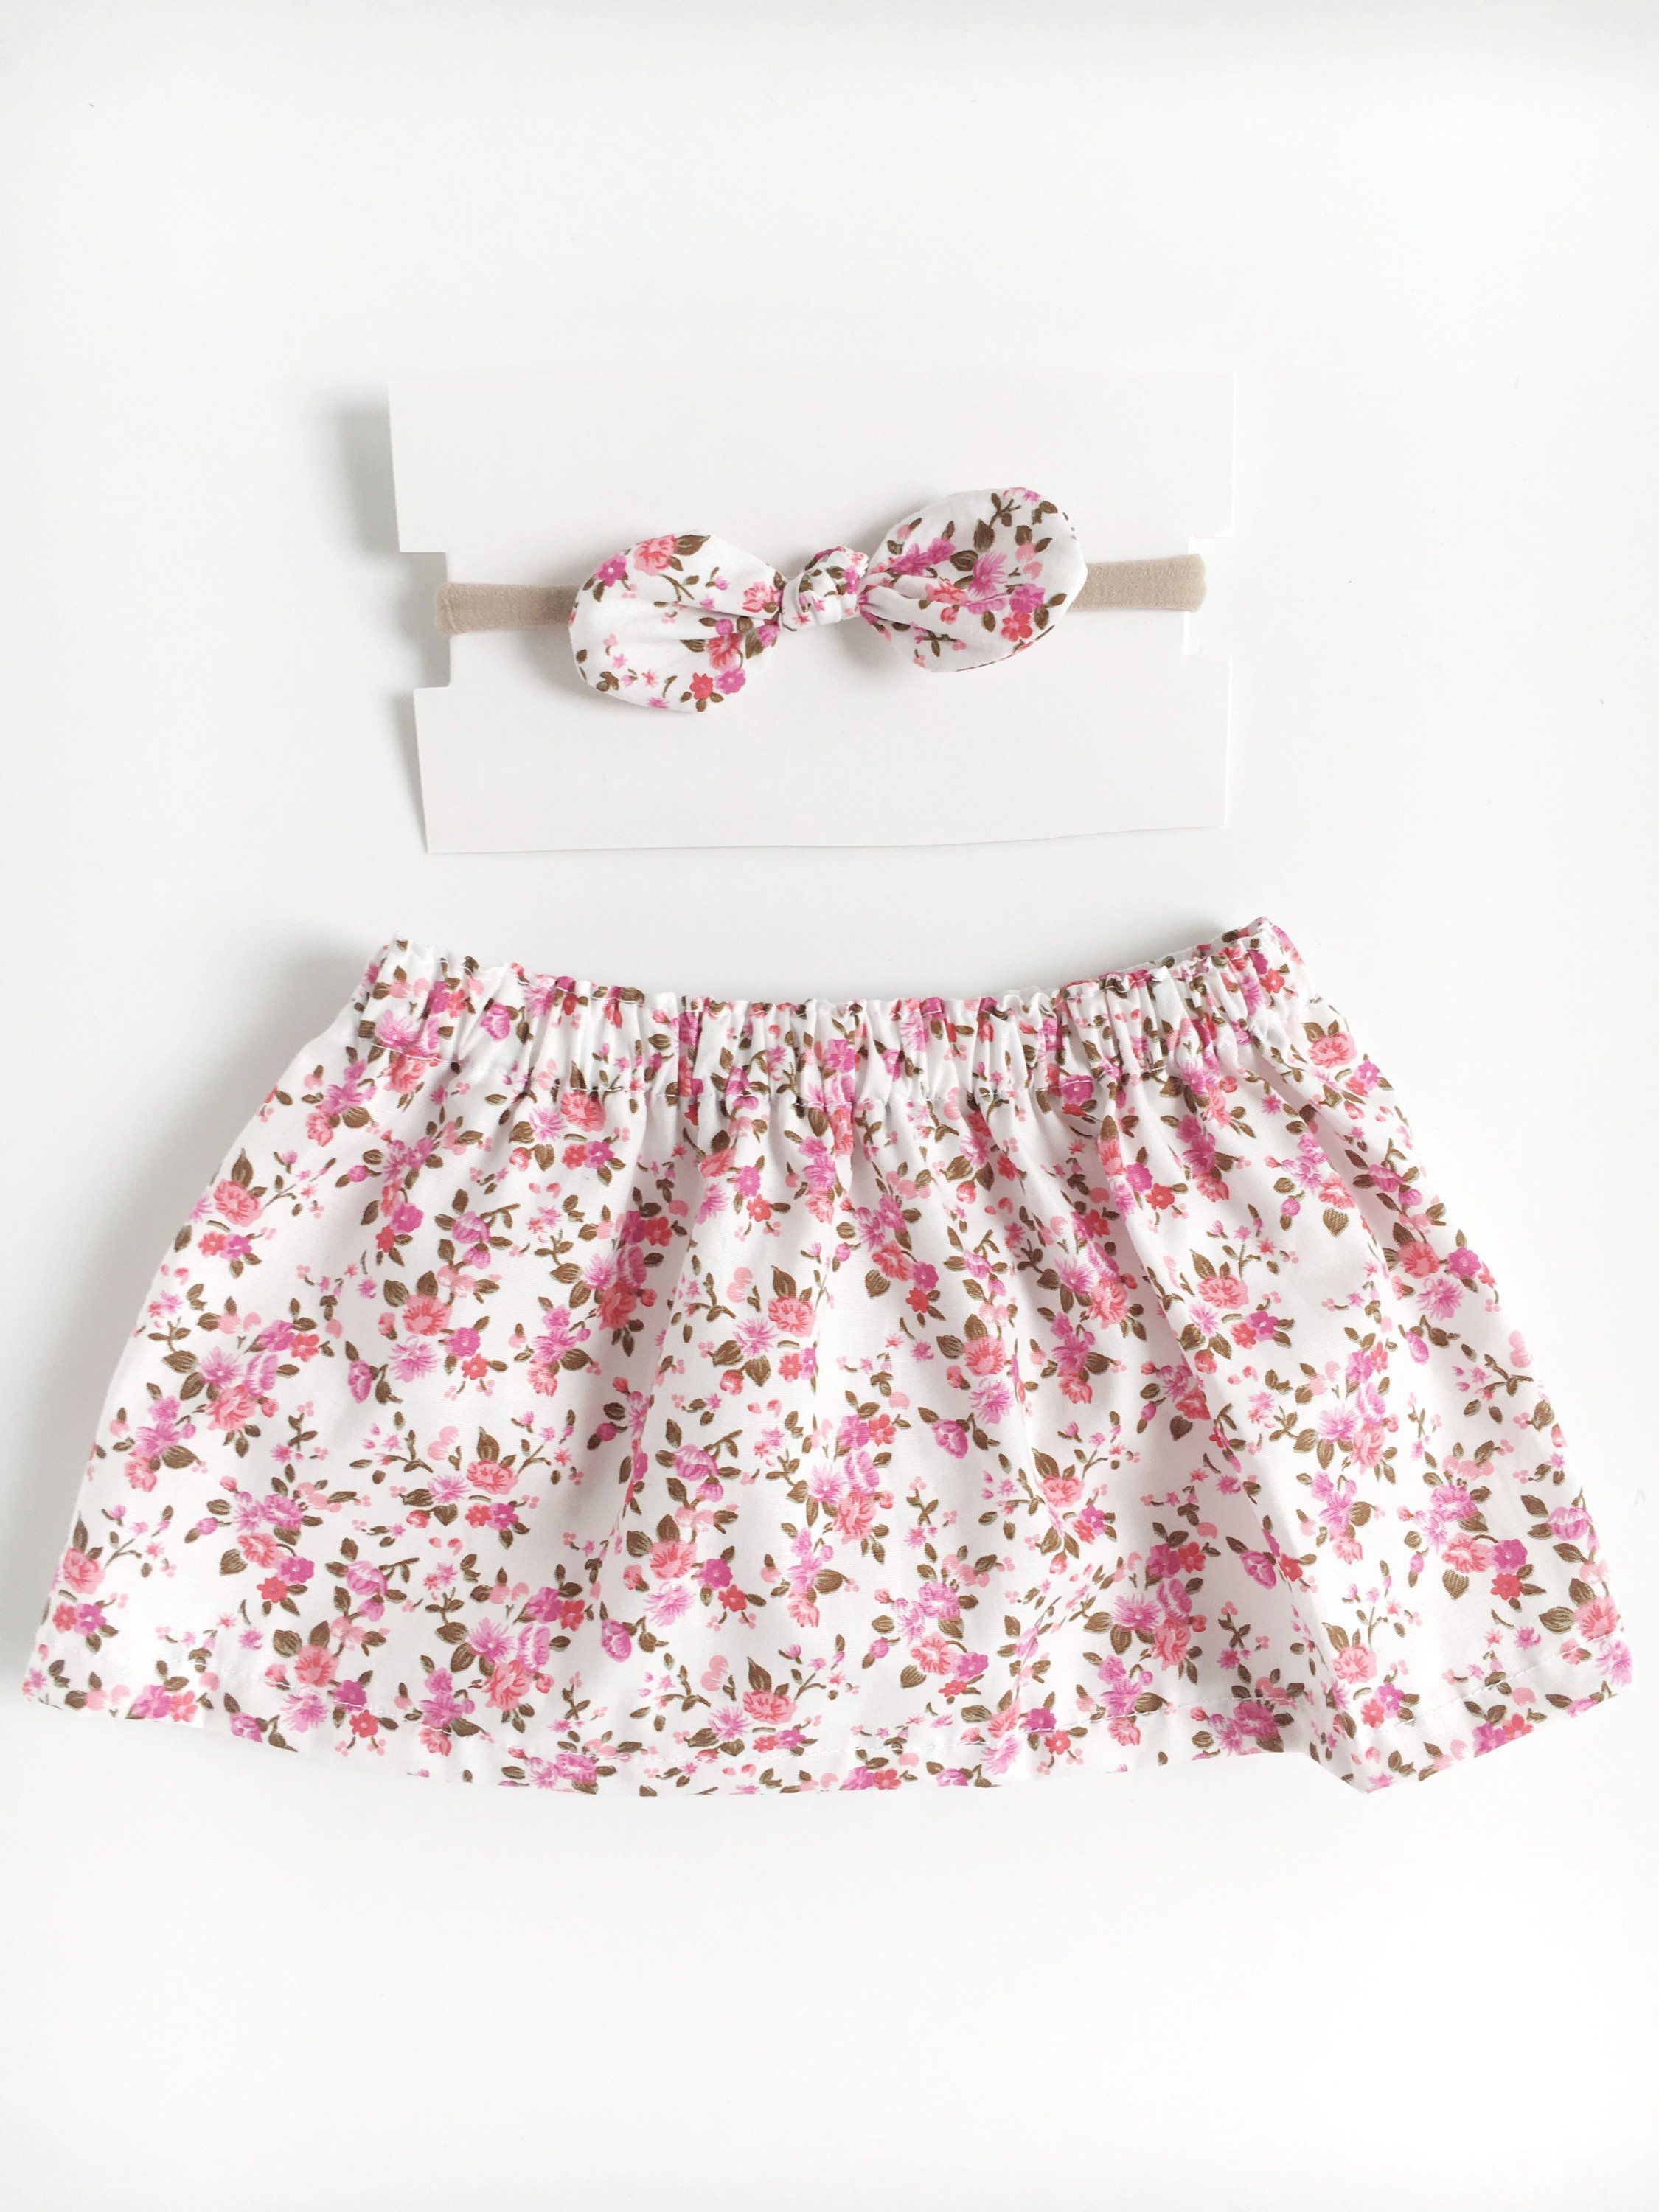 Baby skirt and bow set skirt for baby girl baby skirt set gifts baby skirt and bow set skirt for baby girl baby skirt set gifts for baby girl baby gift set baby easter gift baby girl clothing negle Image collections